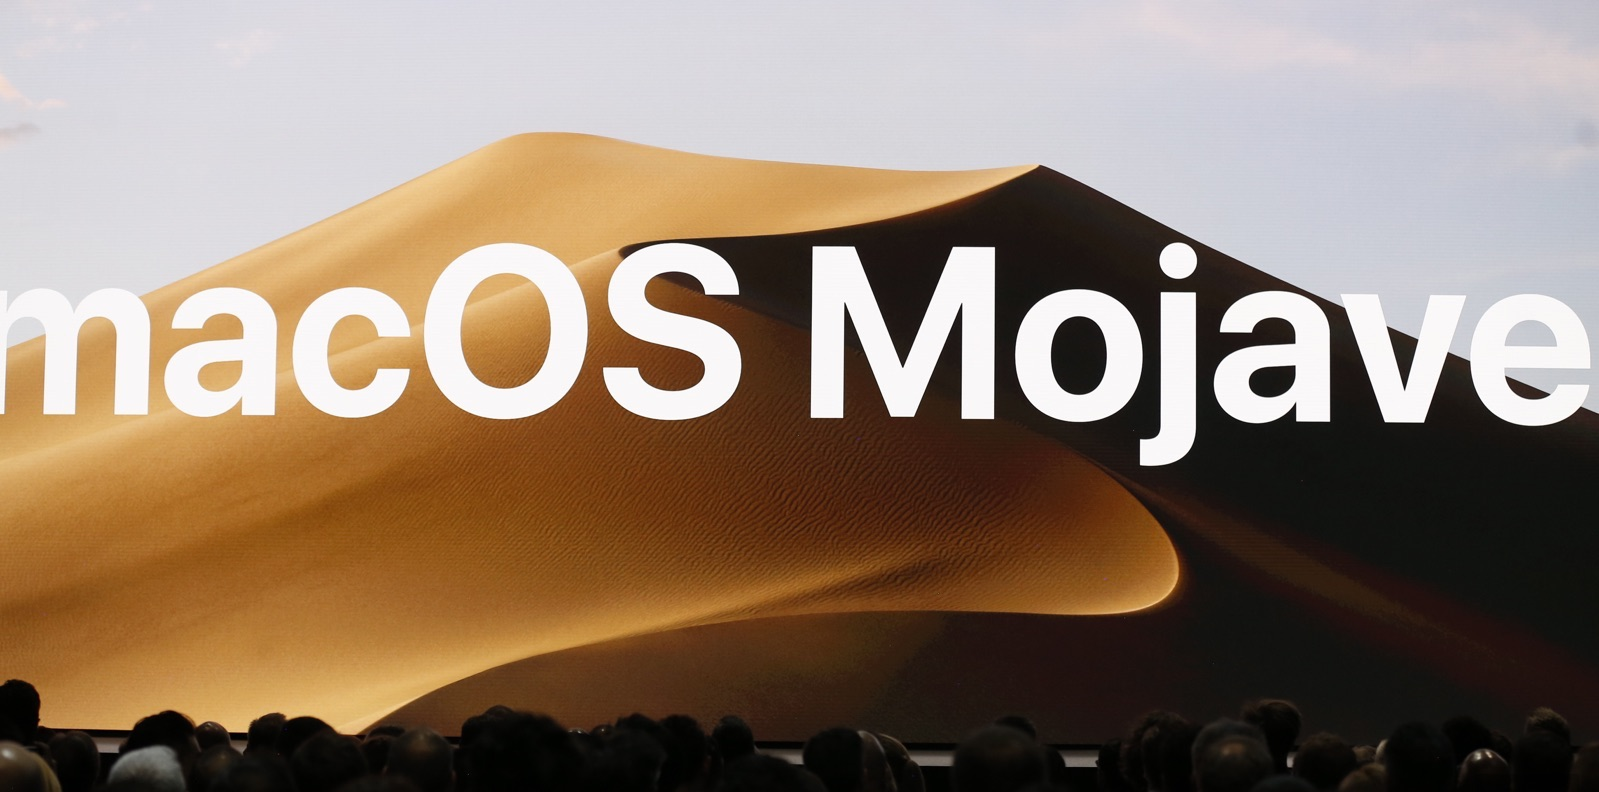 macos-mohave.jpg